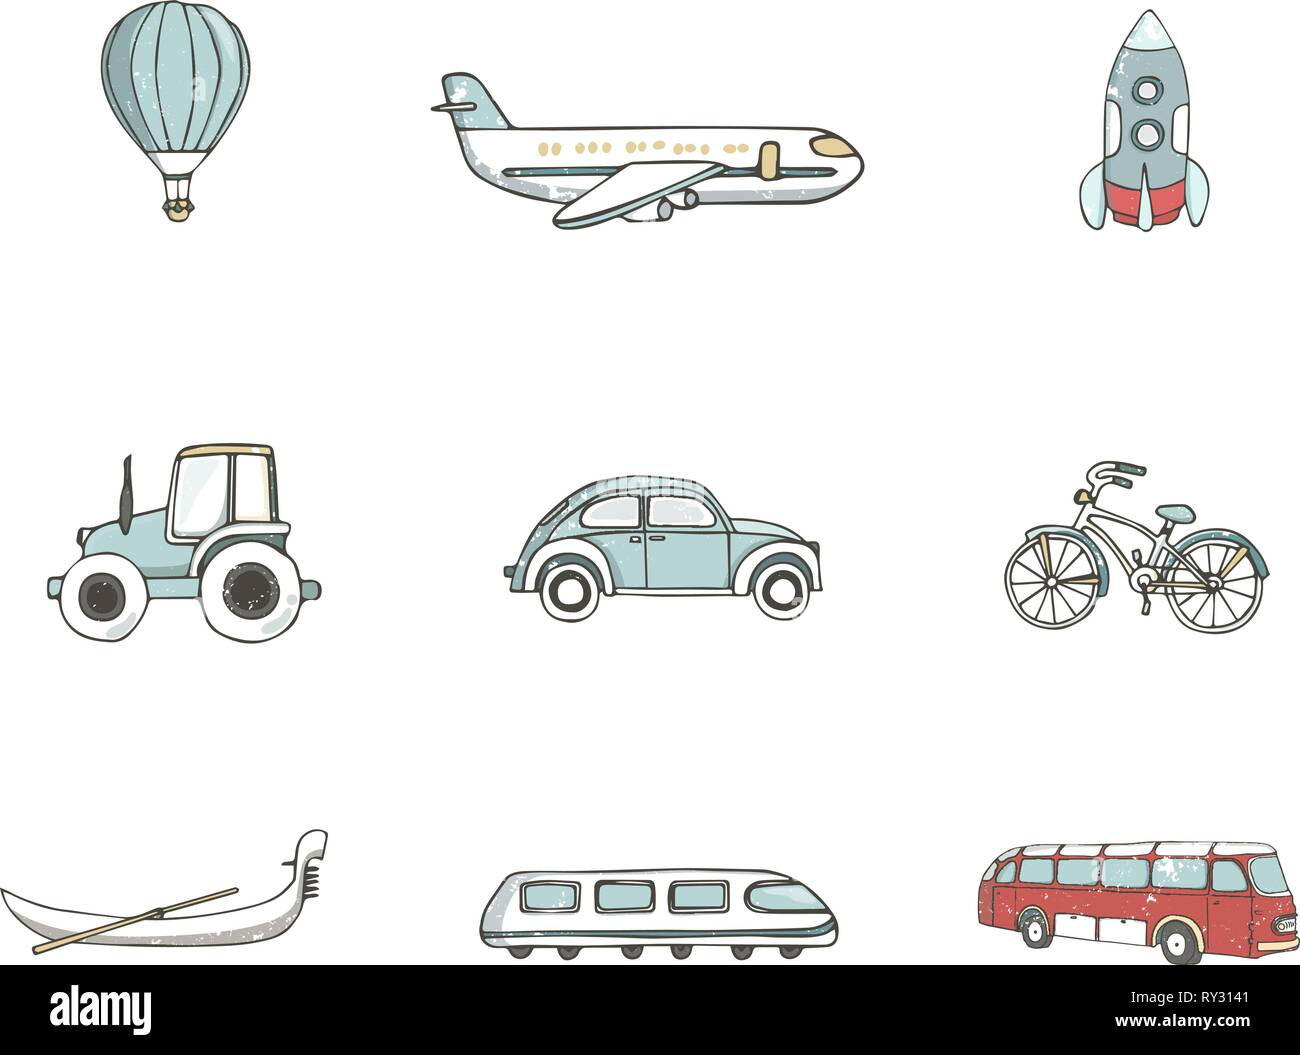 Transport 8 icons. Trasportation Vintage Flat color Concept. Airplane, car, bike. Hand drawn illustration, grunge style texture clip art on white - Stock Vector